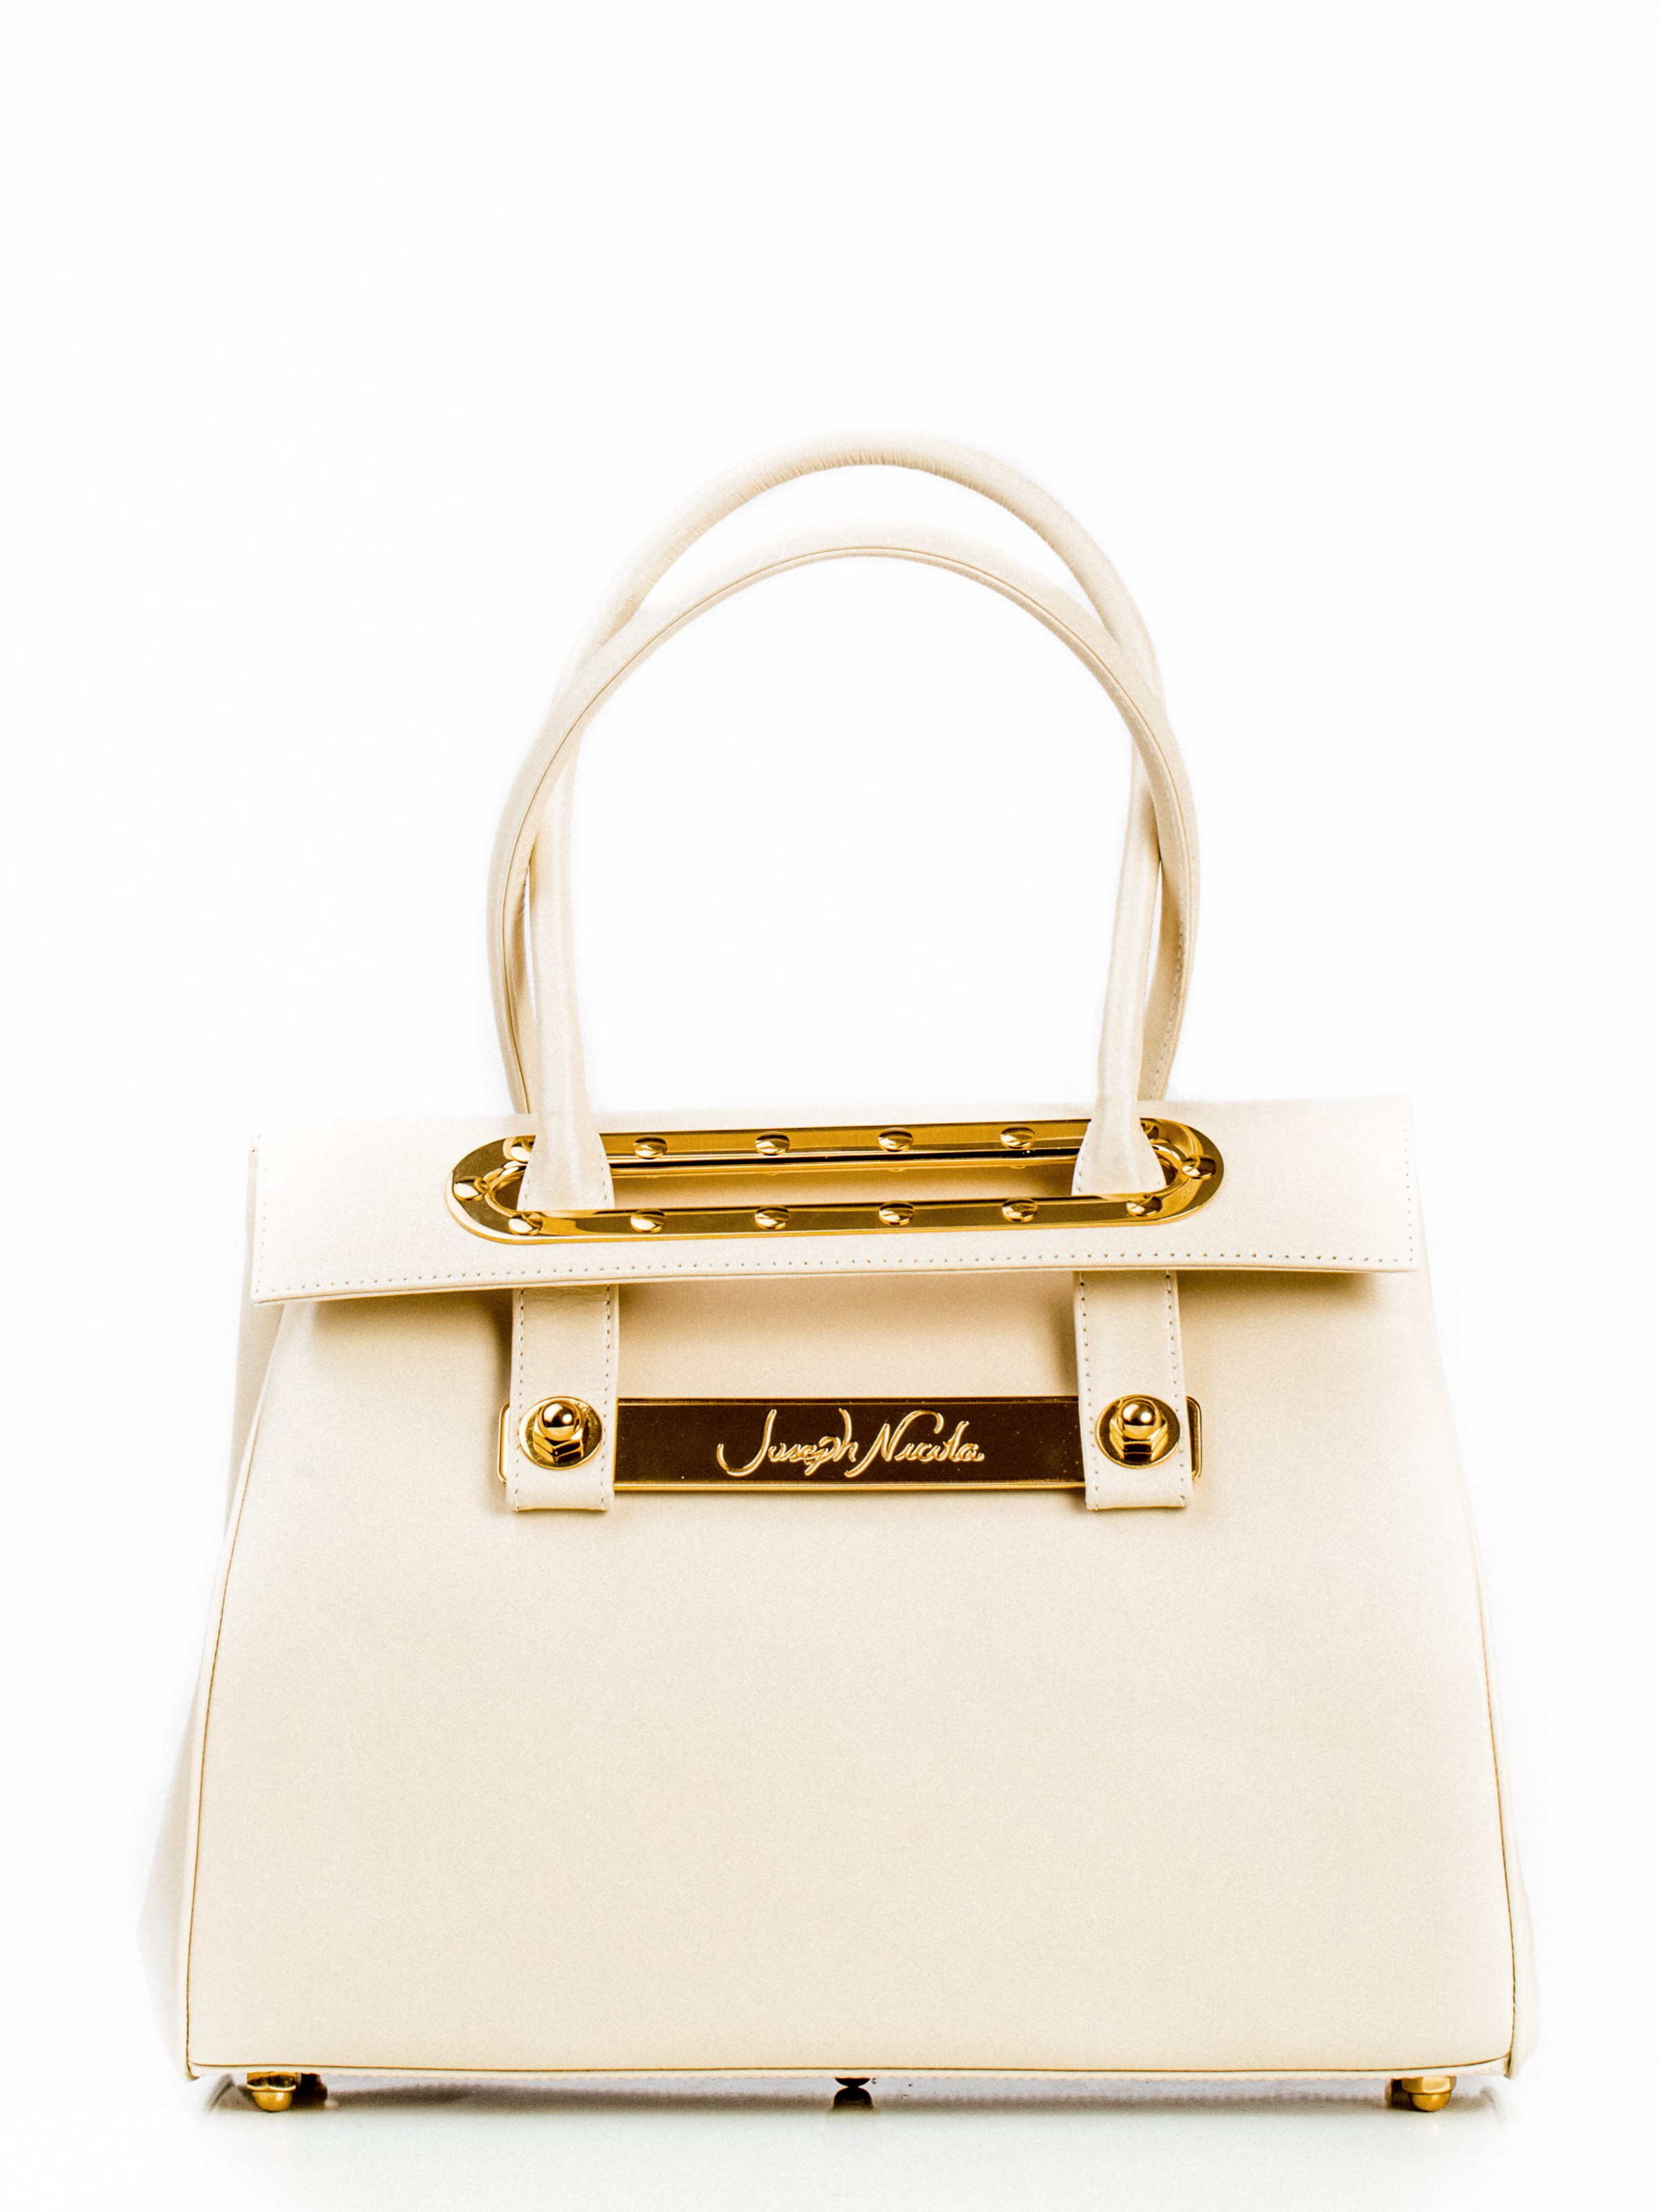 Lola Large Marble Tote W/ 24k Gold Plated Hardware